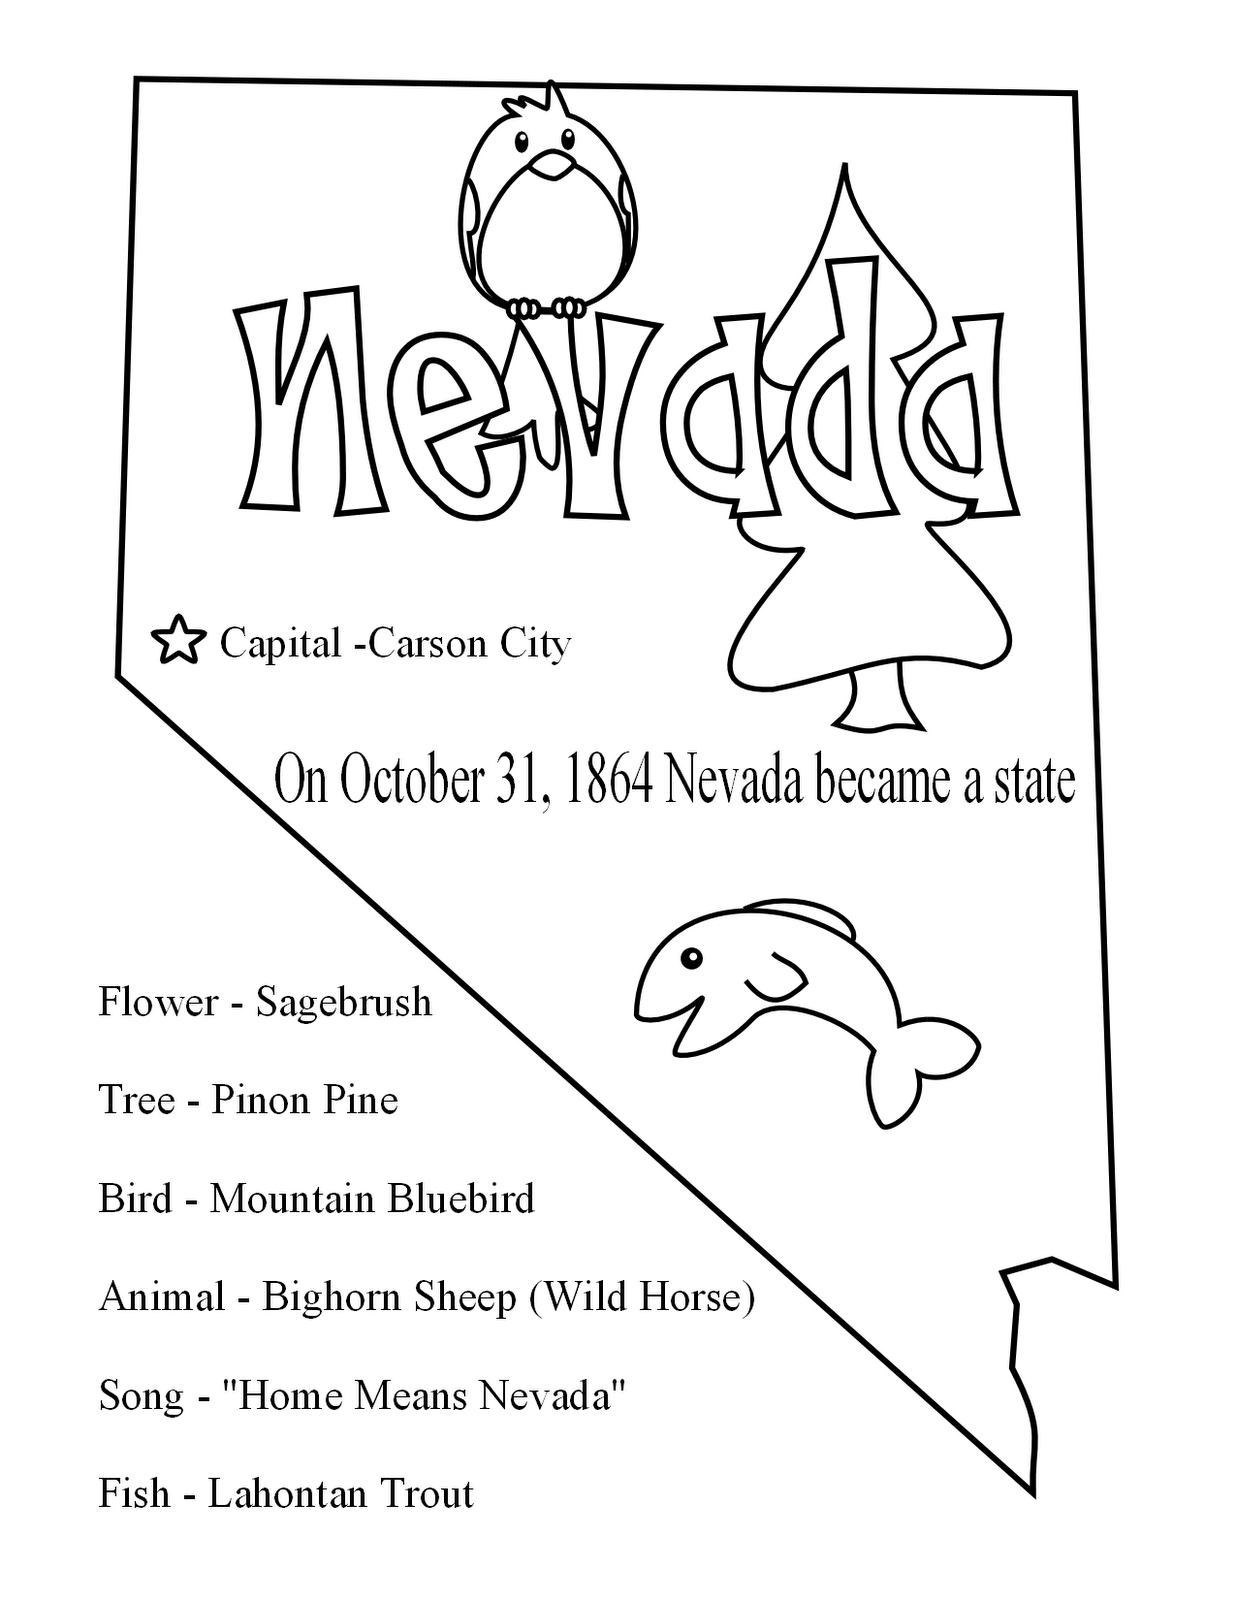 nevada state flower 50 state flowers coloring pages for kids nevada state flower